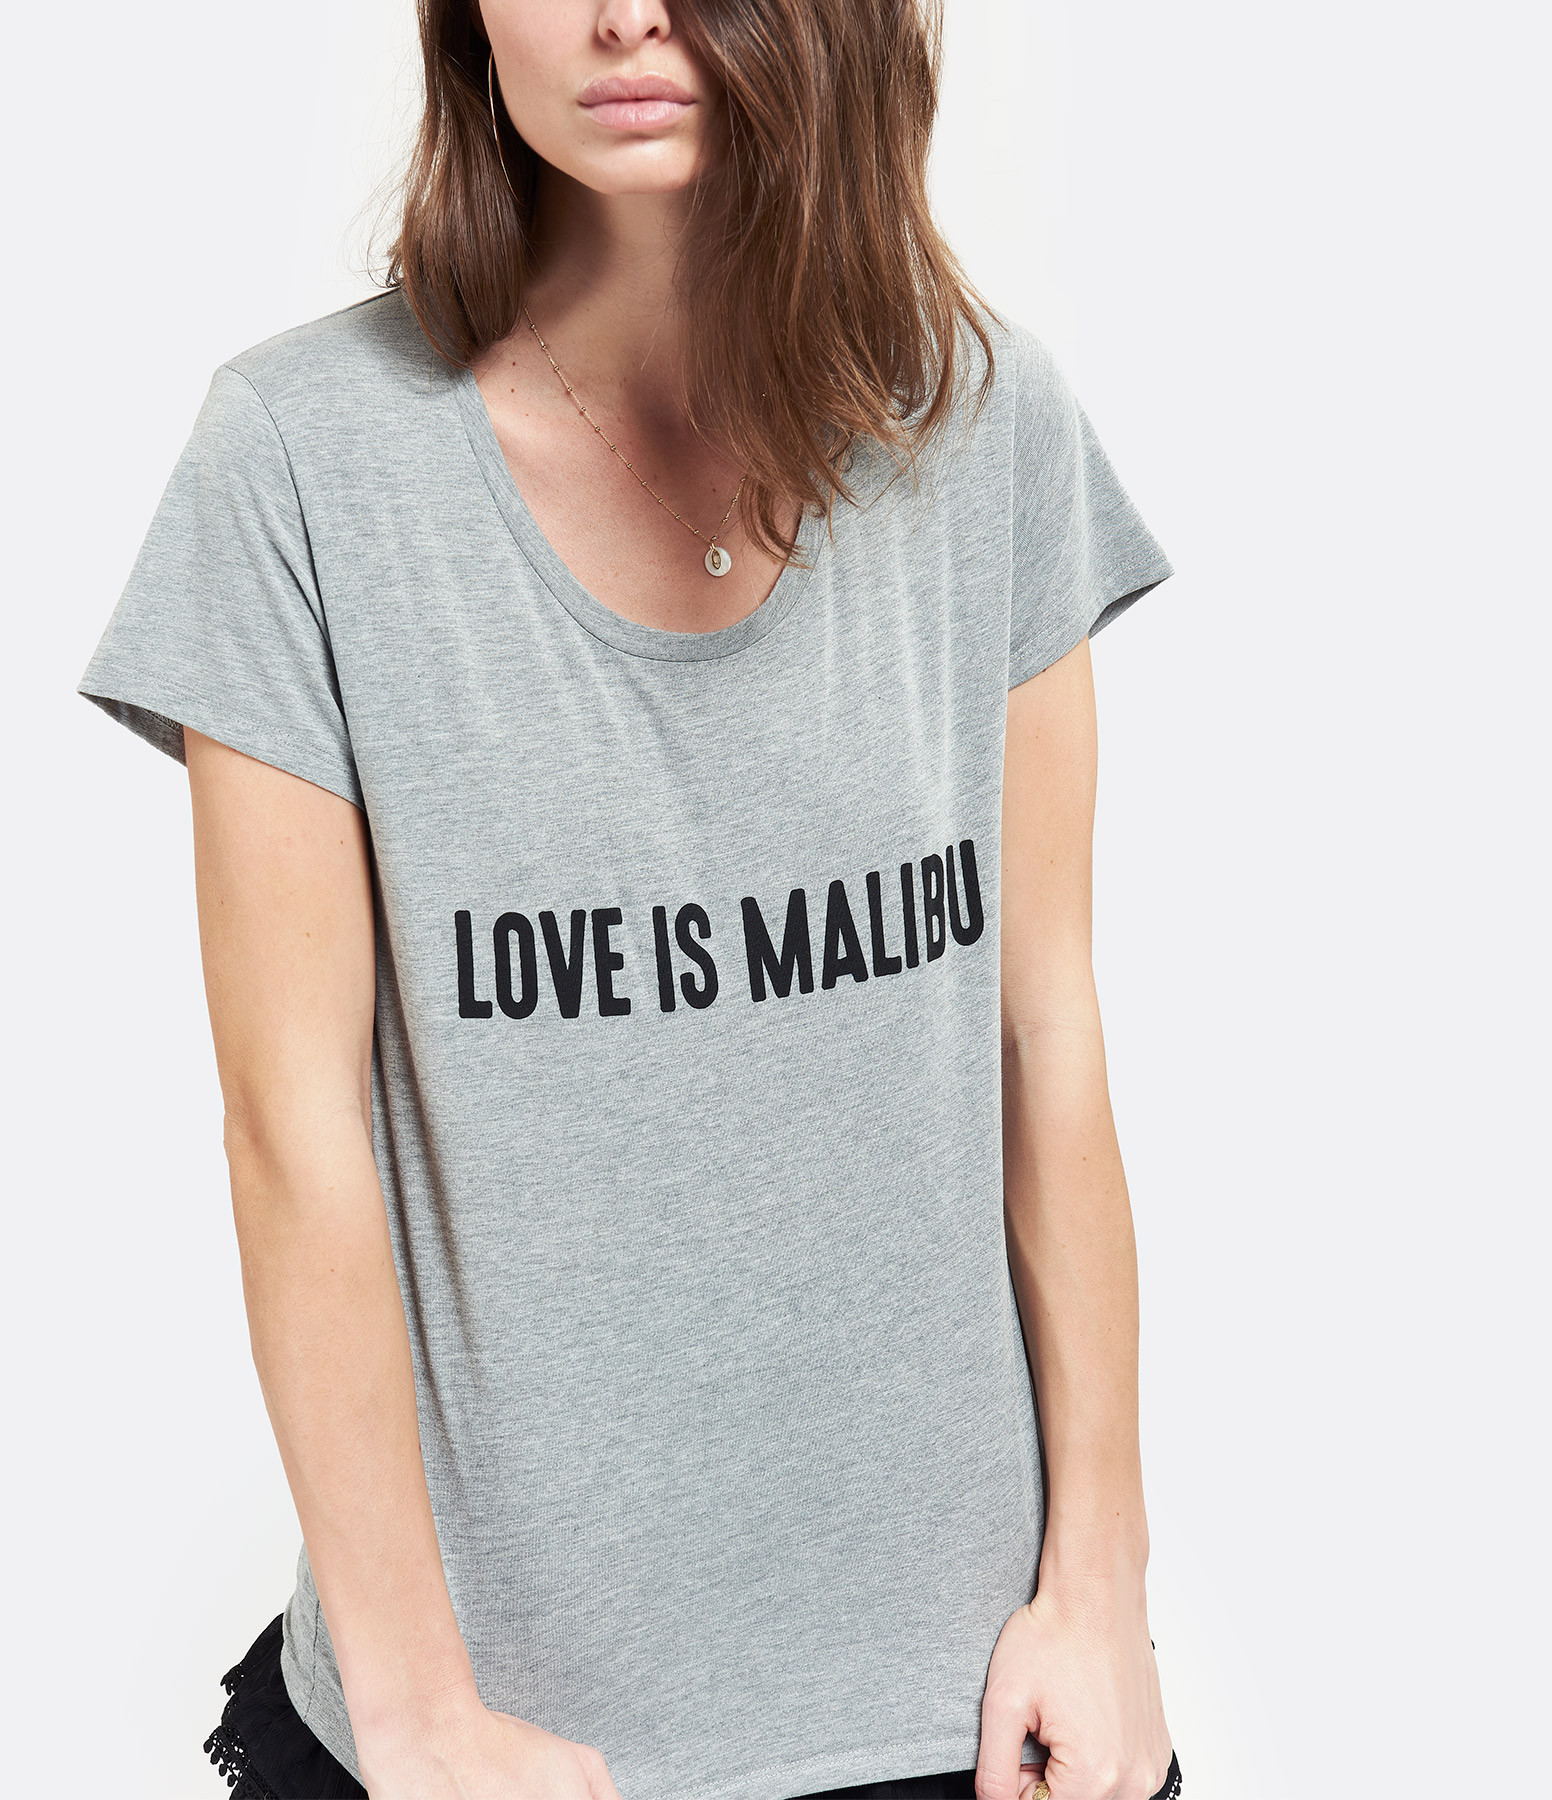 JEANNE VOULAND - Tee-Shirt Devy Love Is Malibu Gris